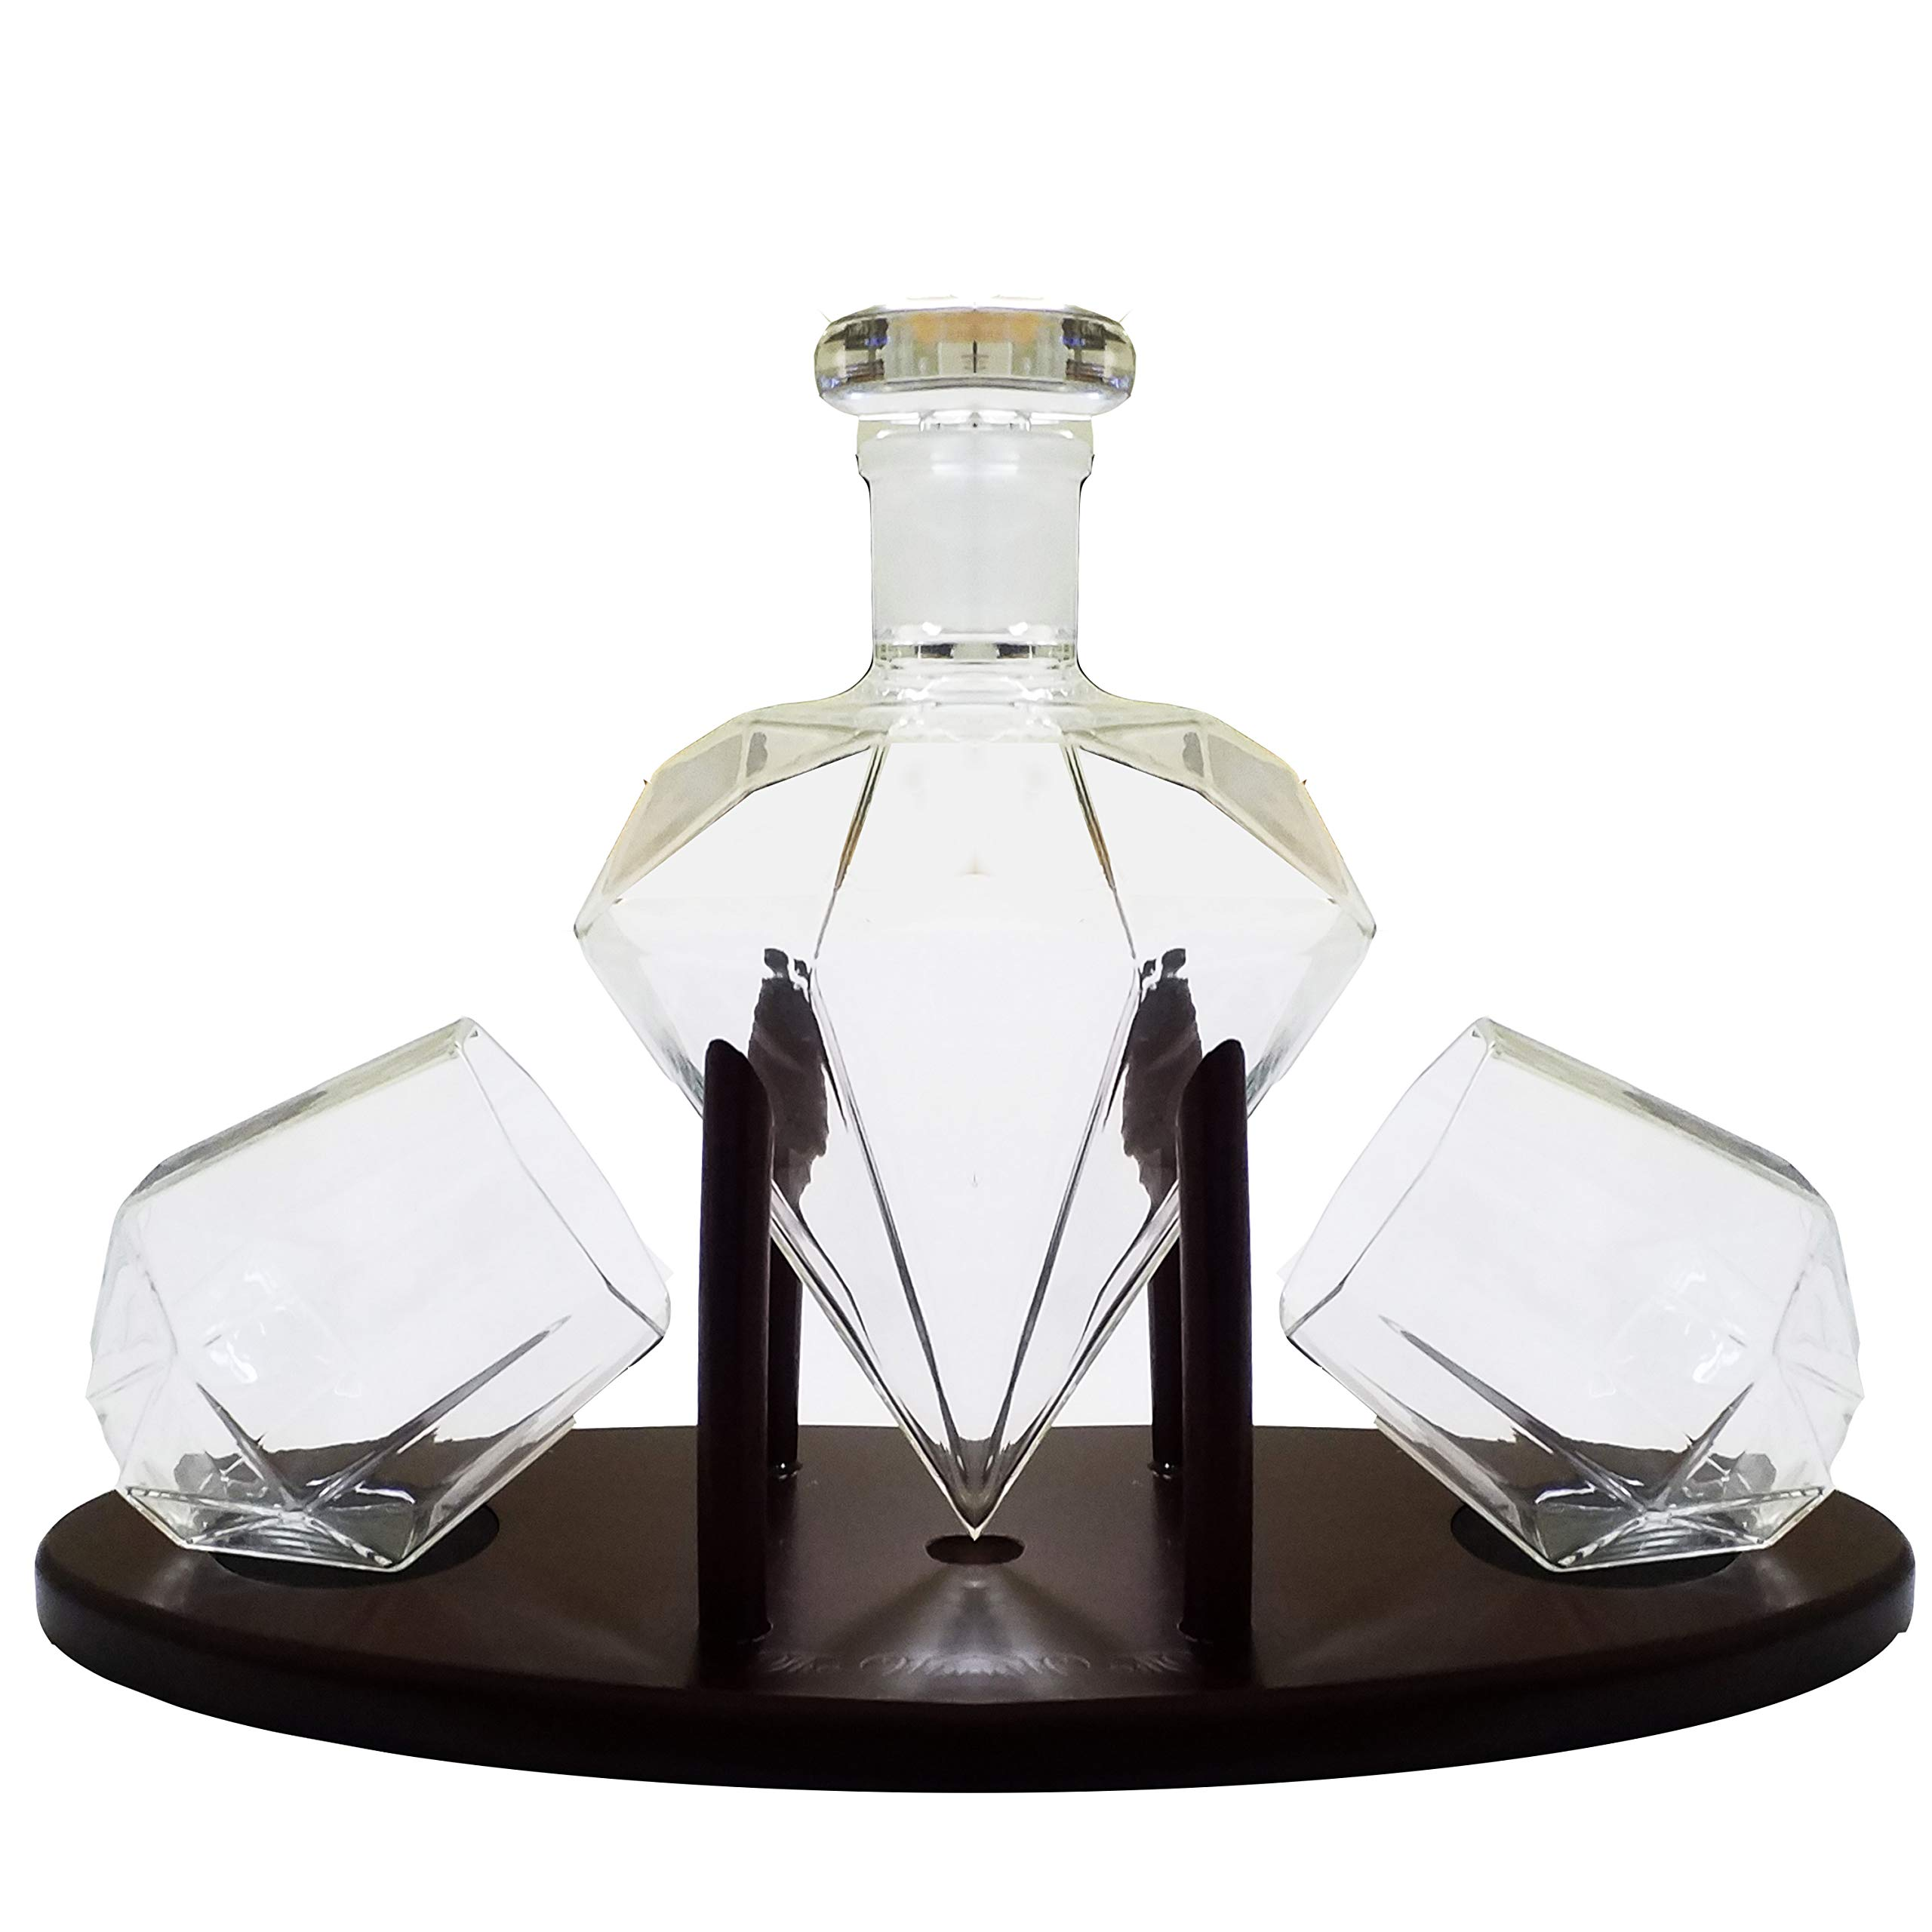 Whiskey Decanter Diamond shaped With 2 Diamond Glasses & Mahogany Wooden Holder - Elegant Handcrafted Crafted Glass Decanter For Liquor, Scotch, Rum, Bourbon, Vodka, Tequila - Great Gift Idea - 750ml by RUGLUSH (Image #5)